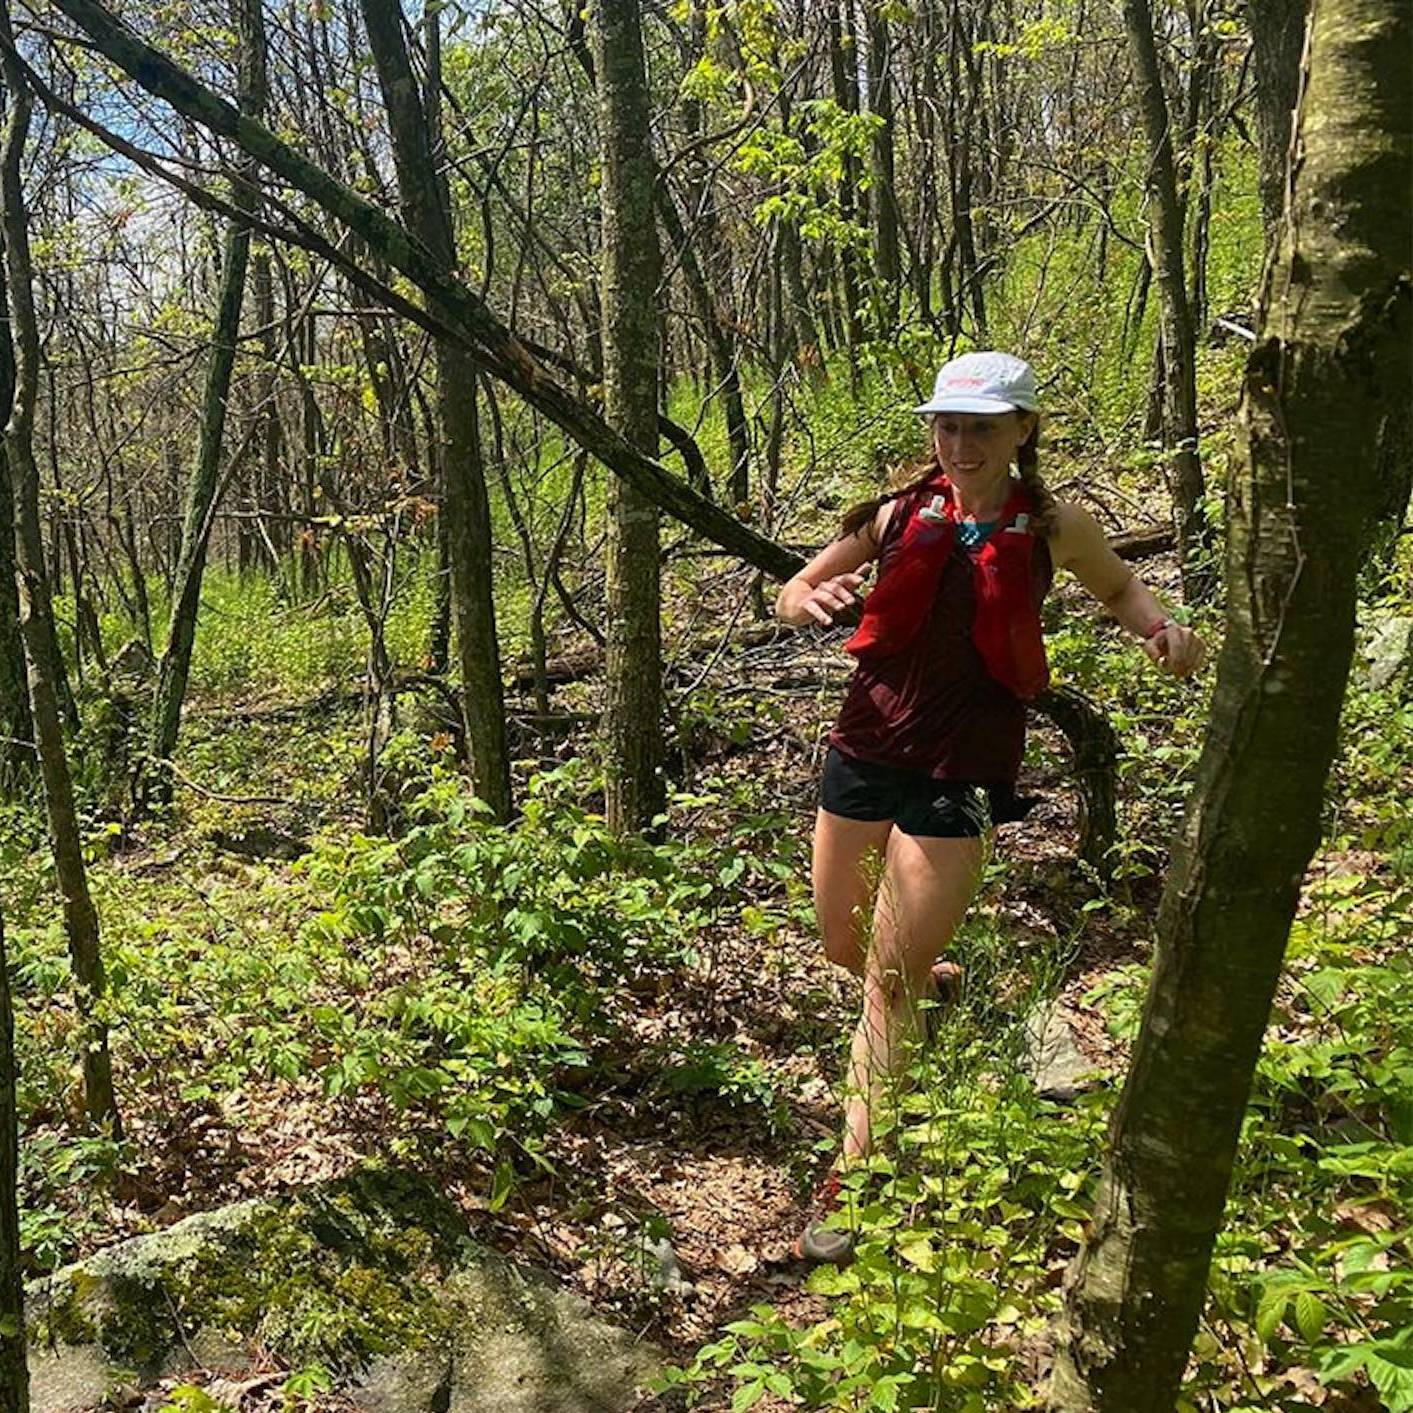 Sarah Hodder trail running through forest on sunny day